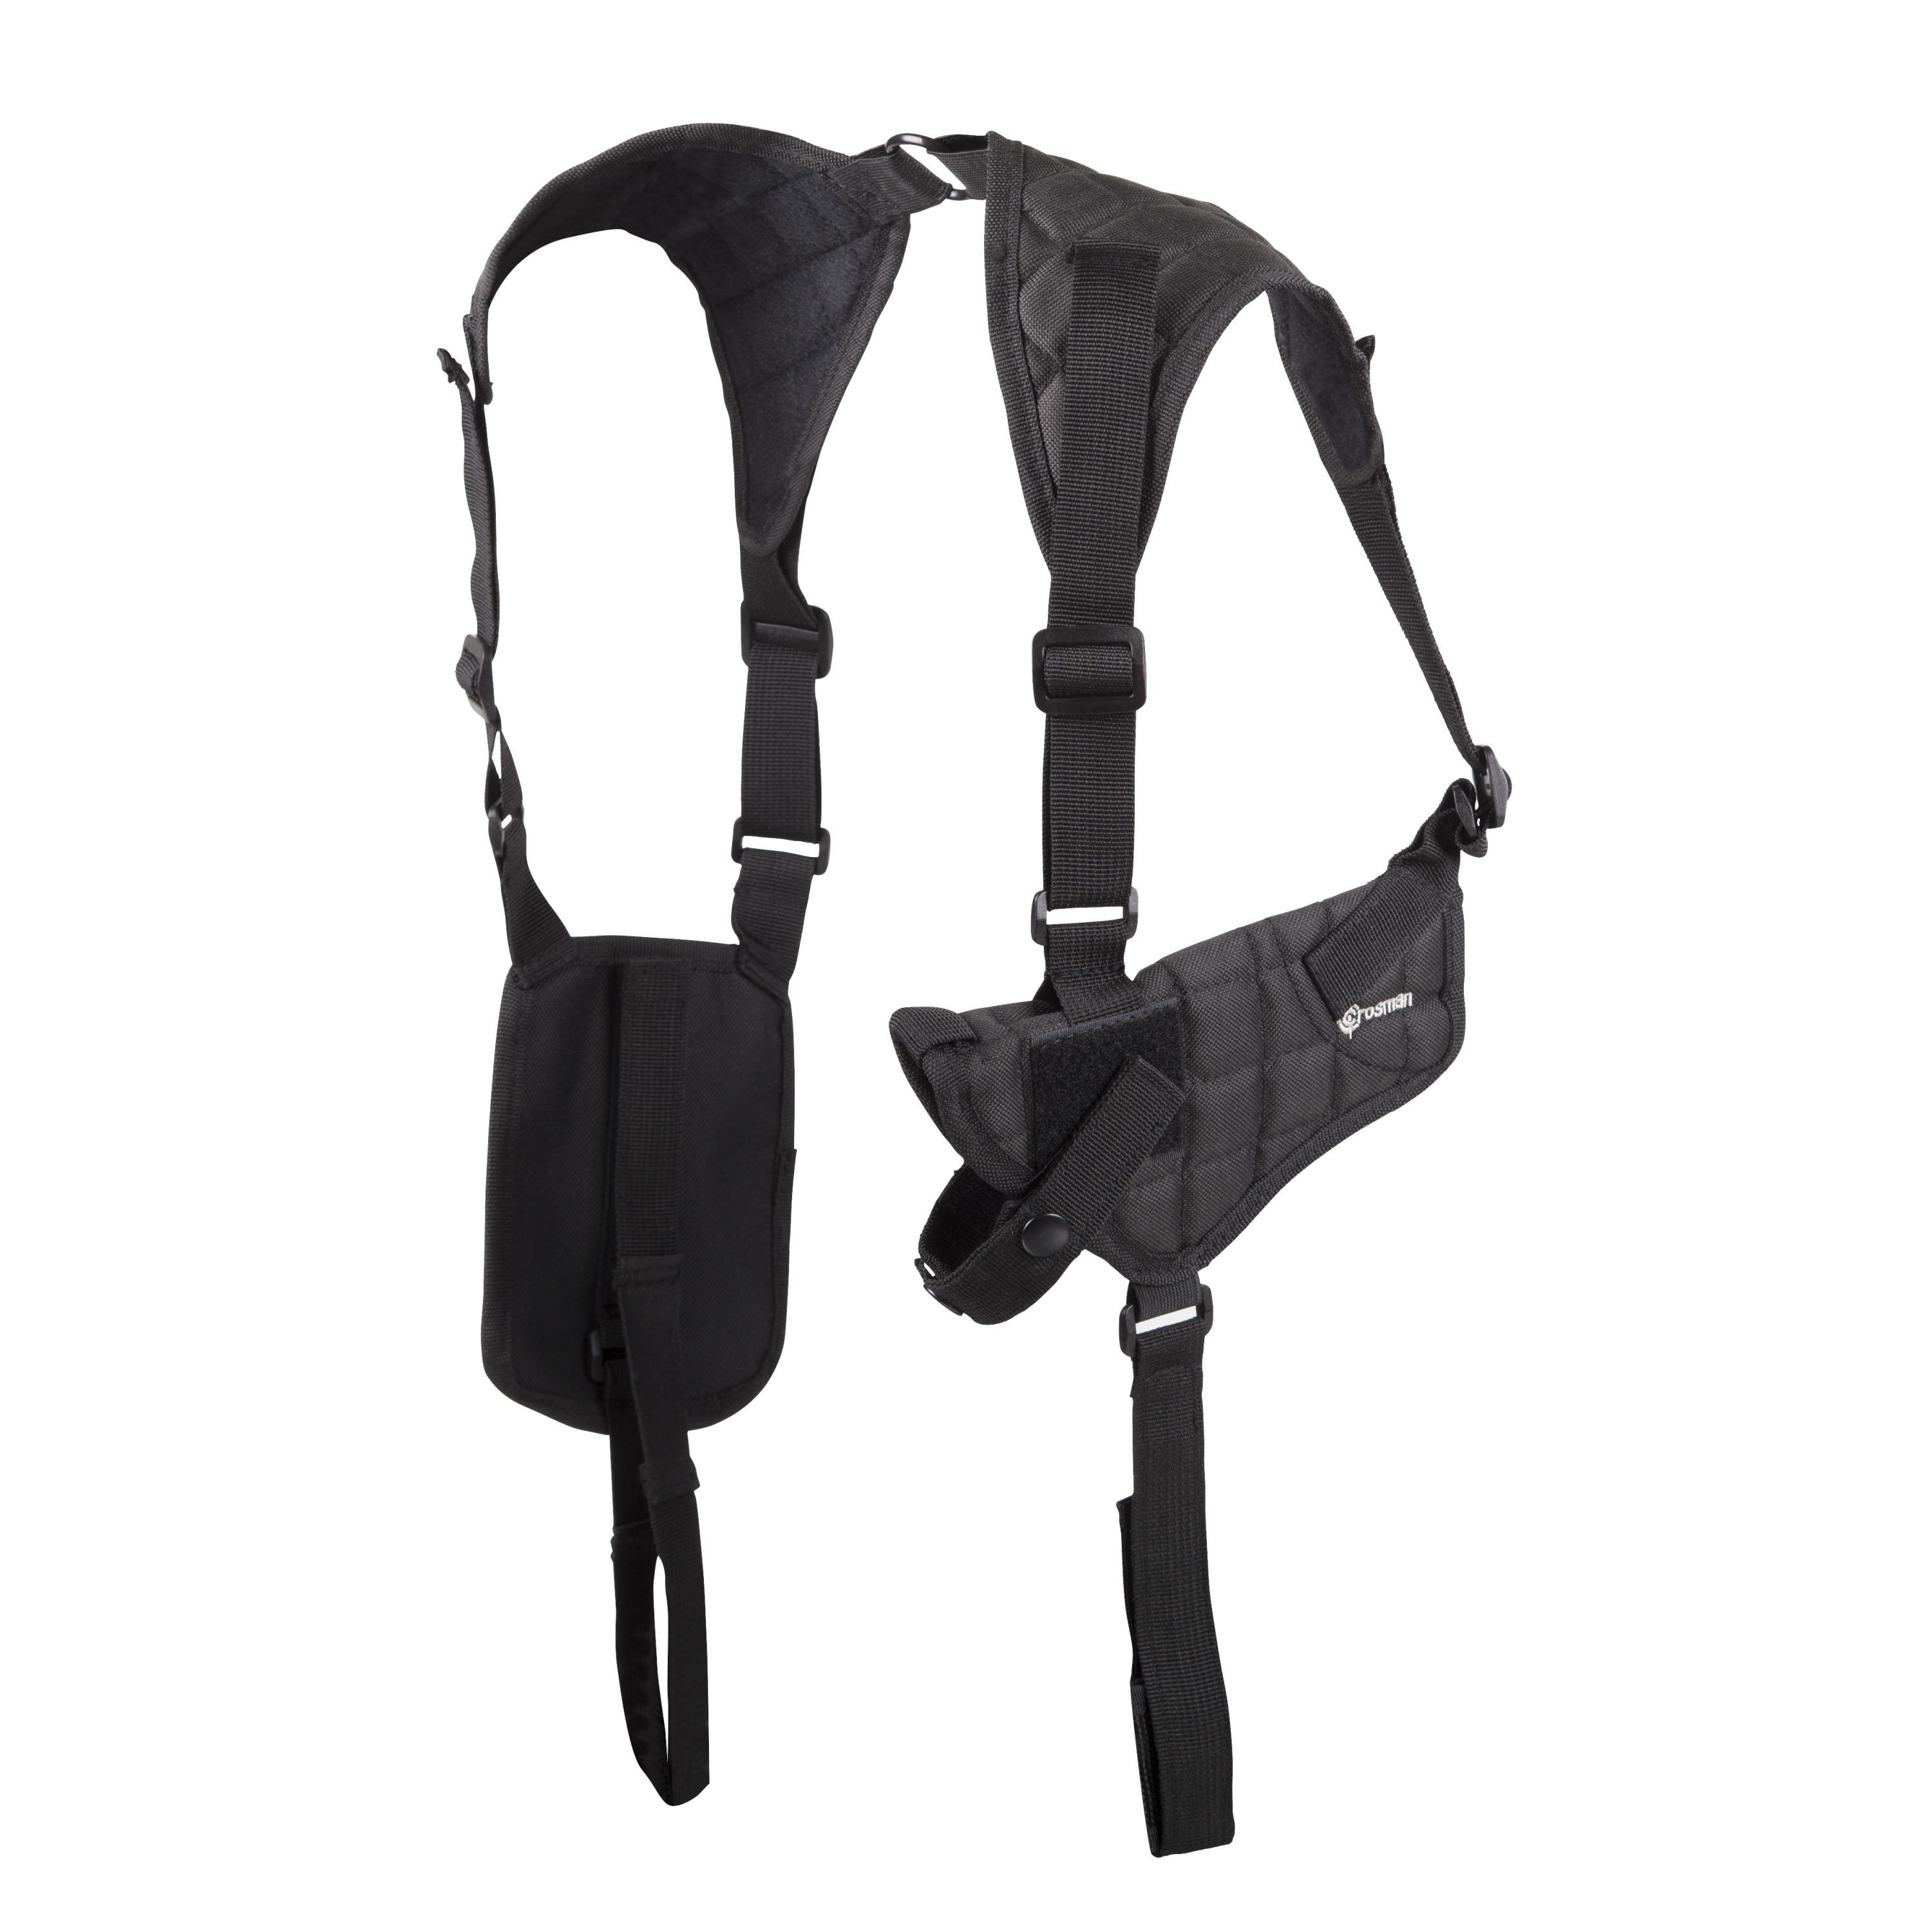 Crosman CSHB Shoulder Holster with Adjustable side straps, fits most handguns, black